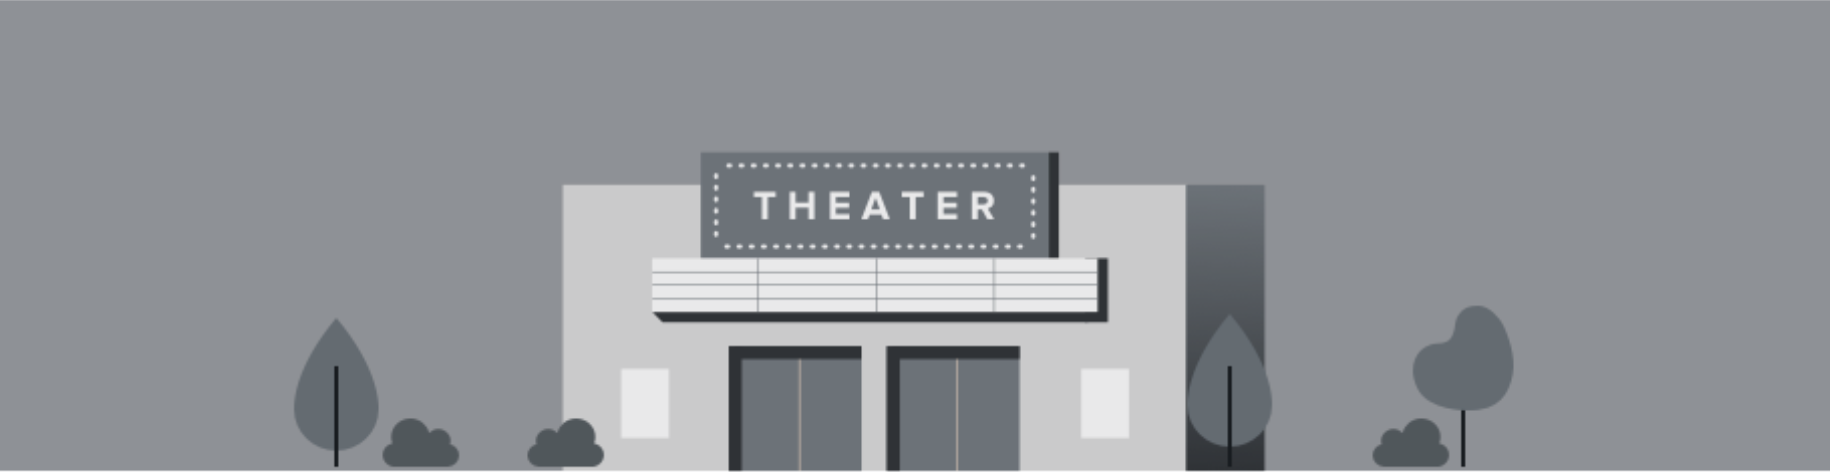 theater illustration